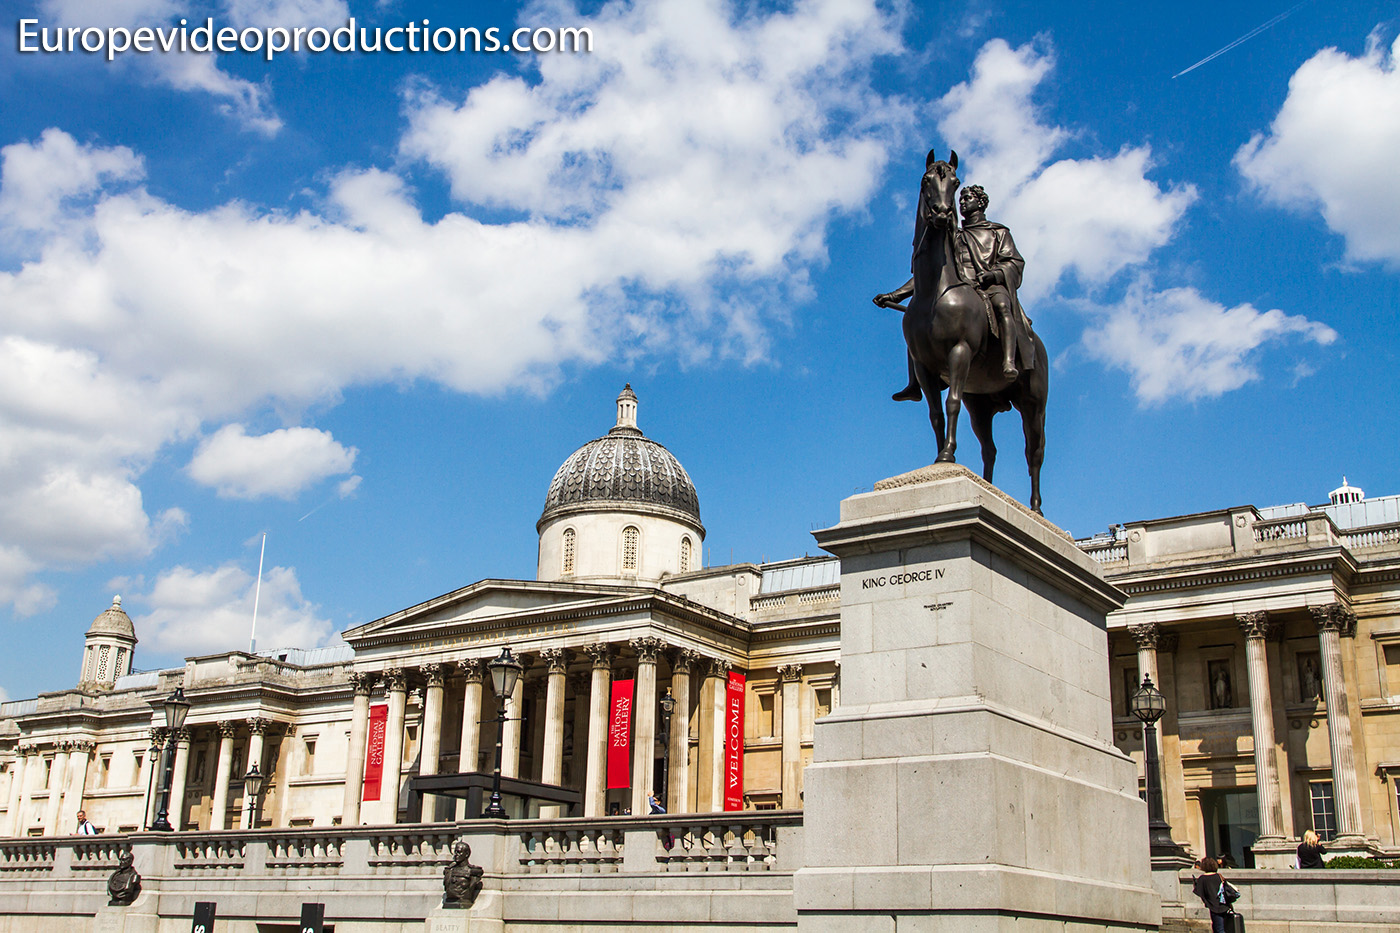 National Gallery on Trafalgar Square in London in England